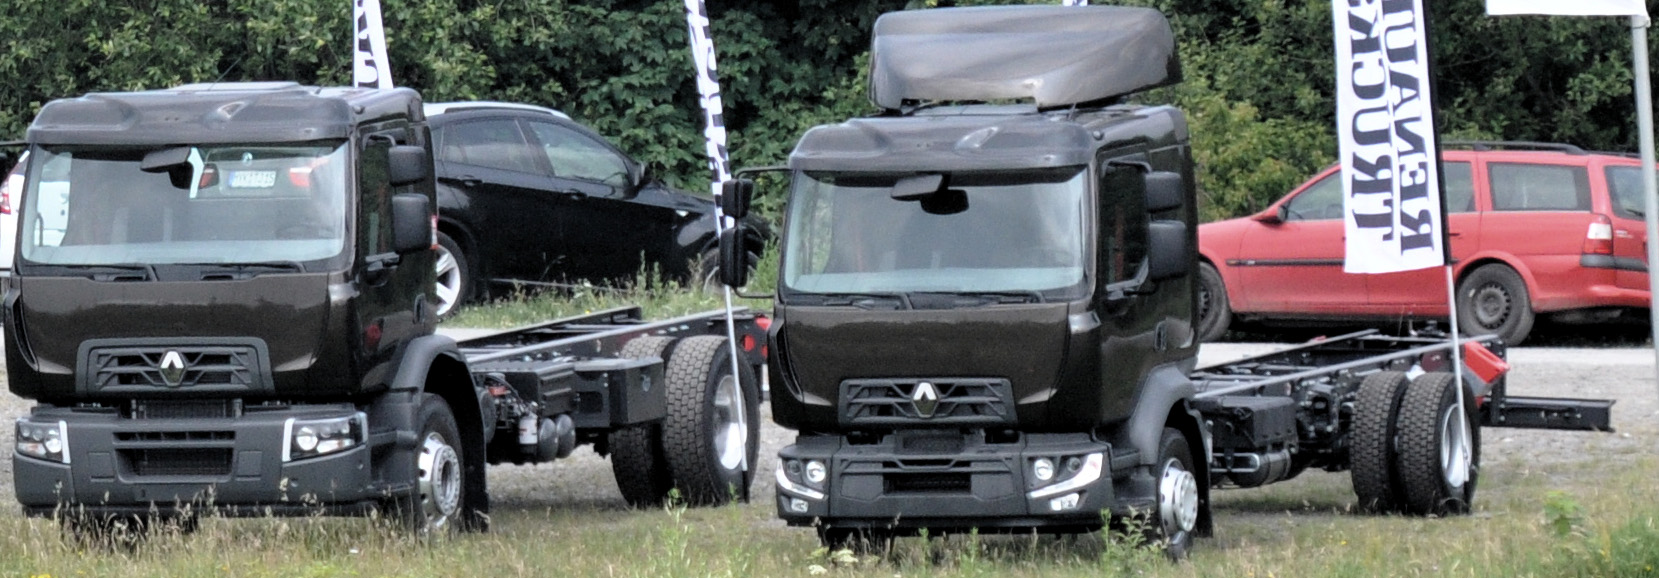 D And D Trailers >> File Renault Trucks D And D Wide Cropped Jpg Wikipedia